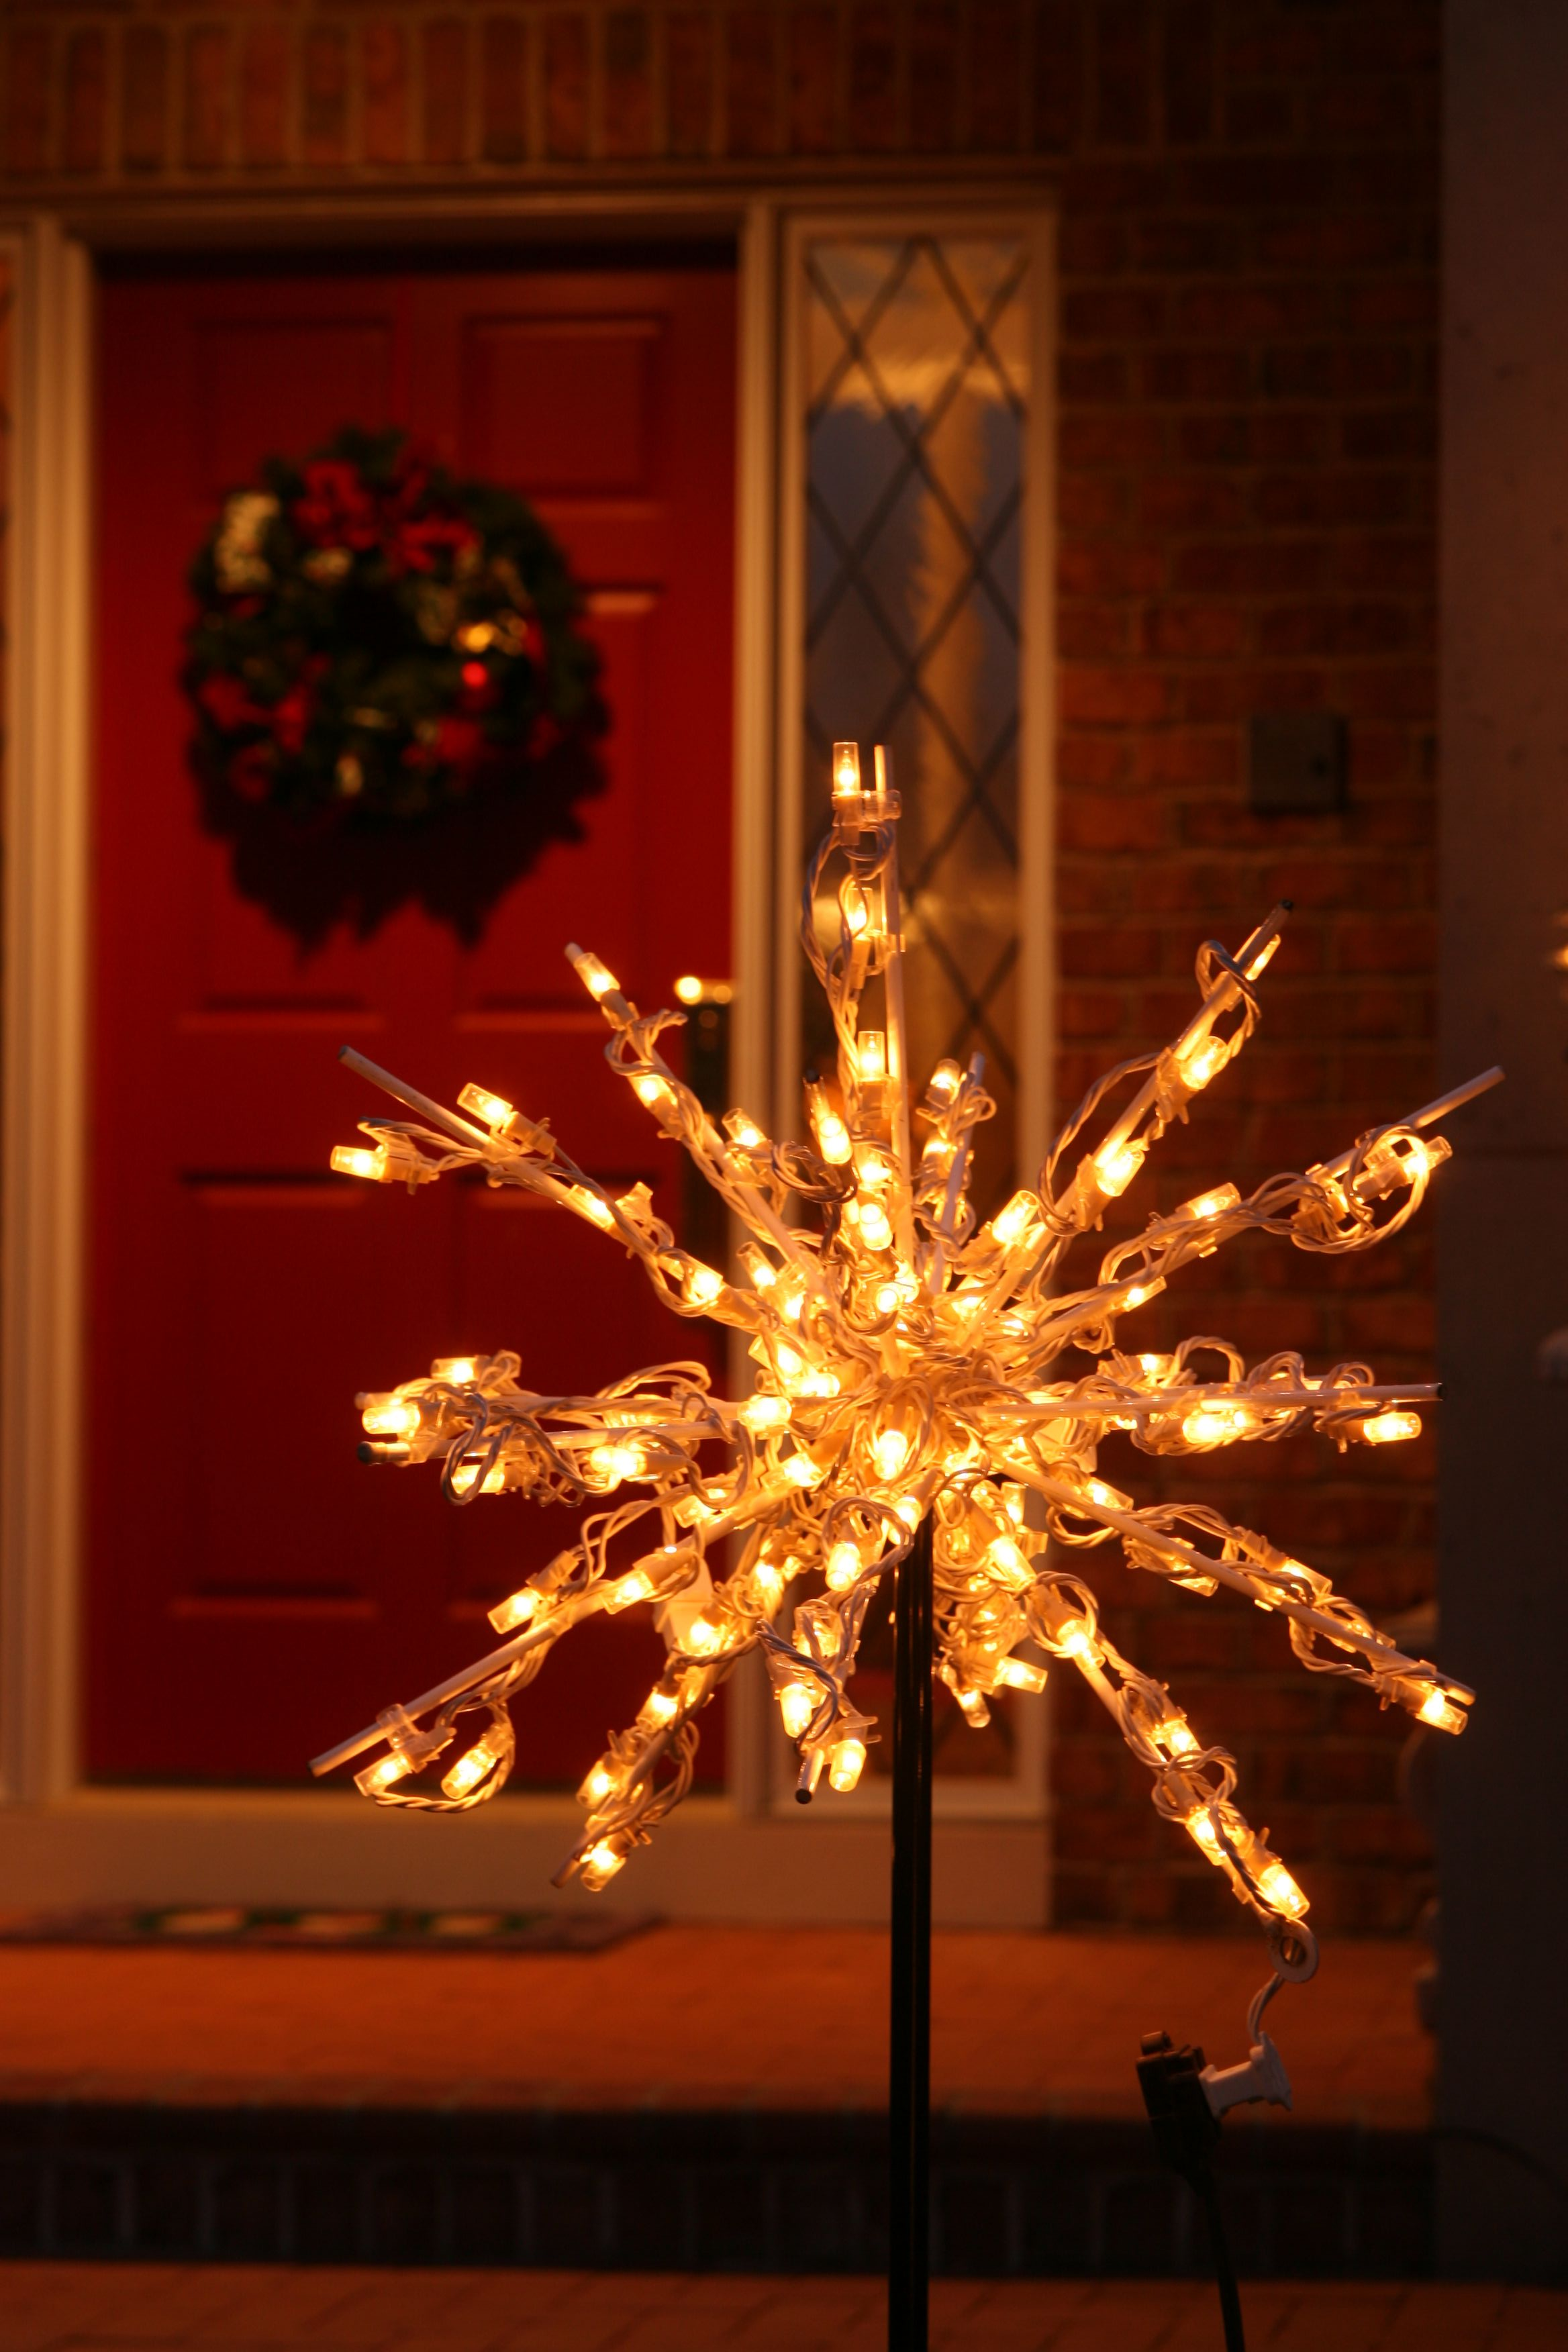 Did you miss illumination saturday outdoor lighting perspectives starbursts liven up the holiday mood anywhere on your lawn aloadofball Gallery